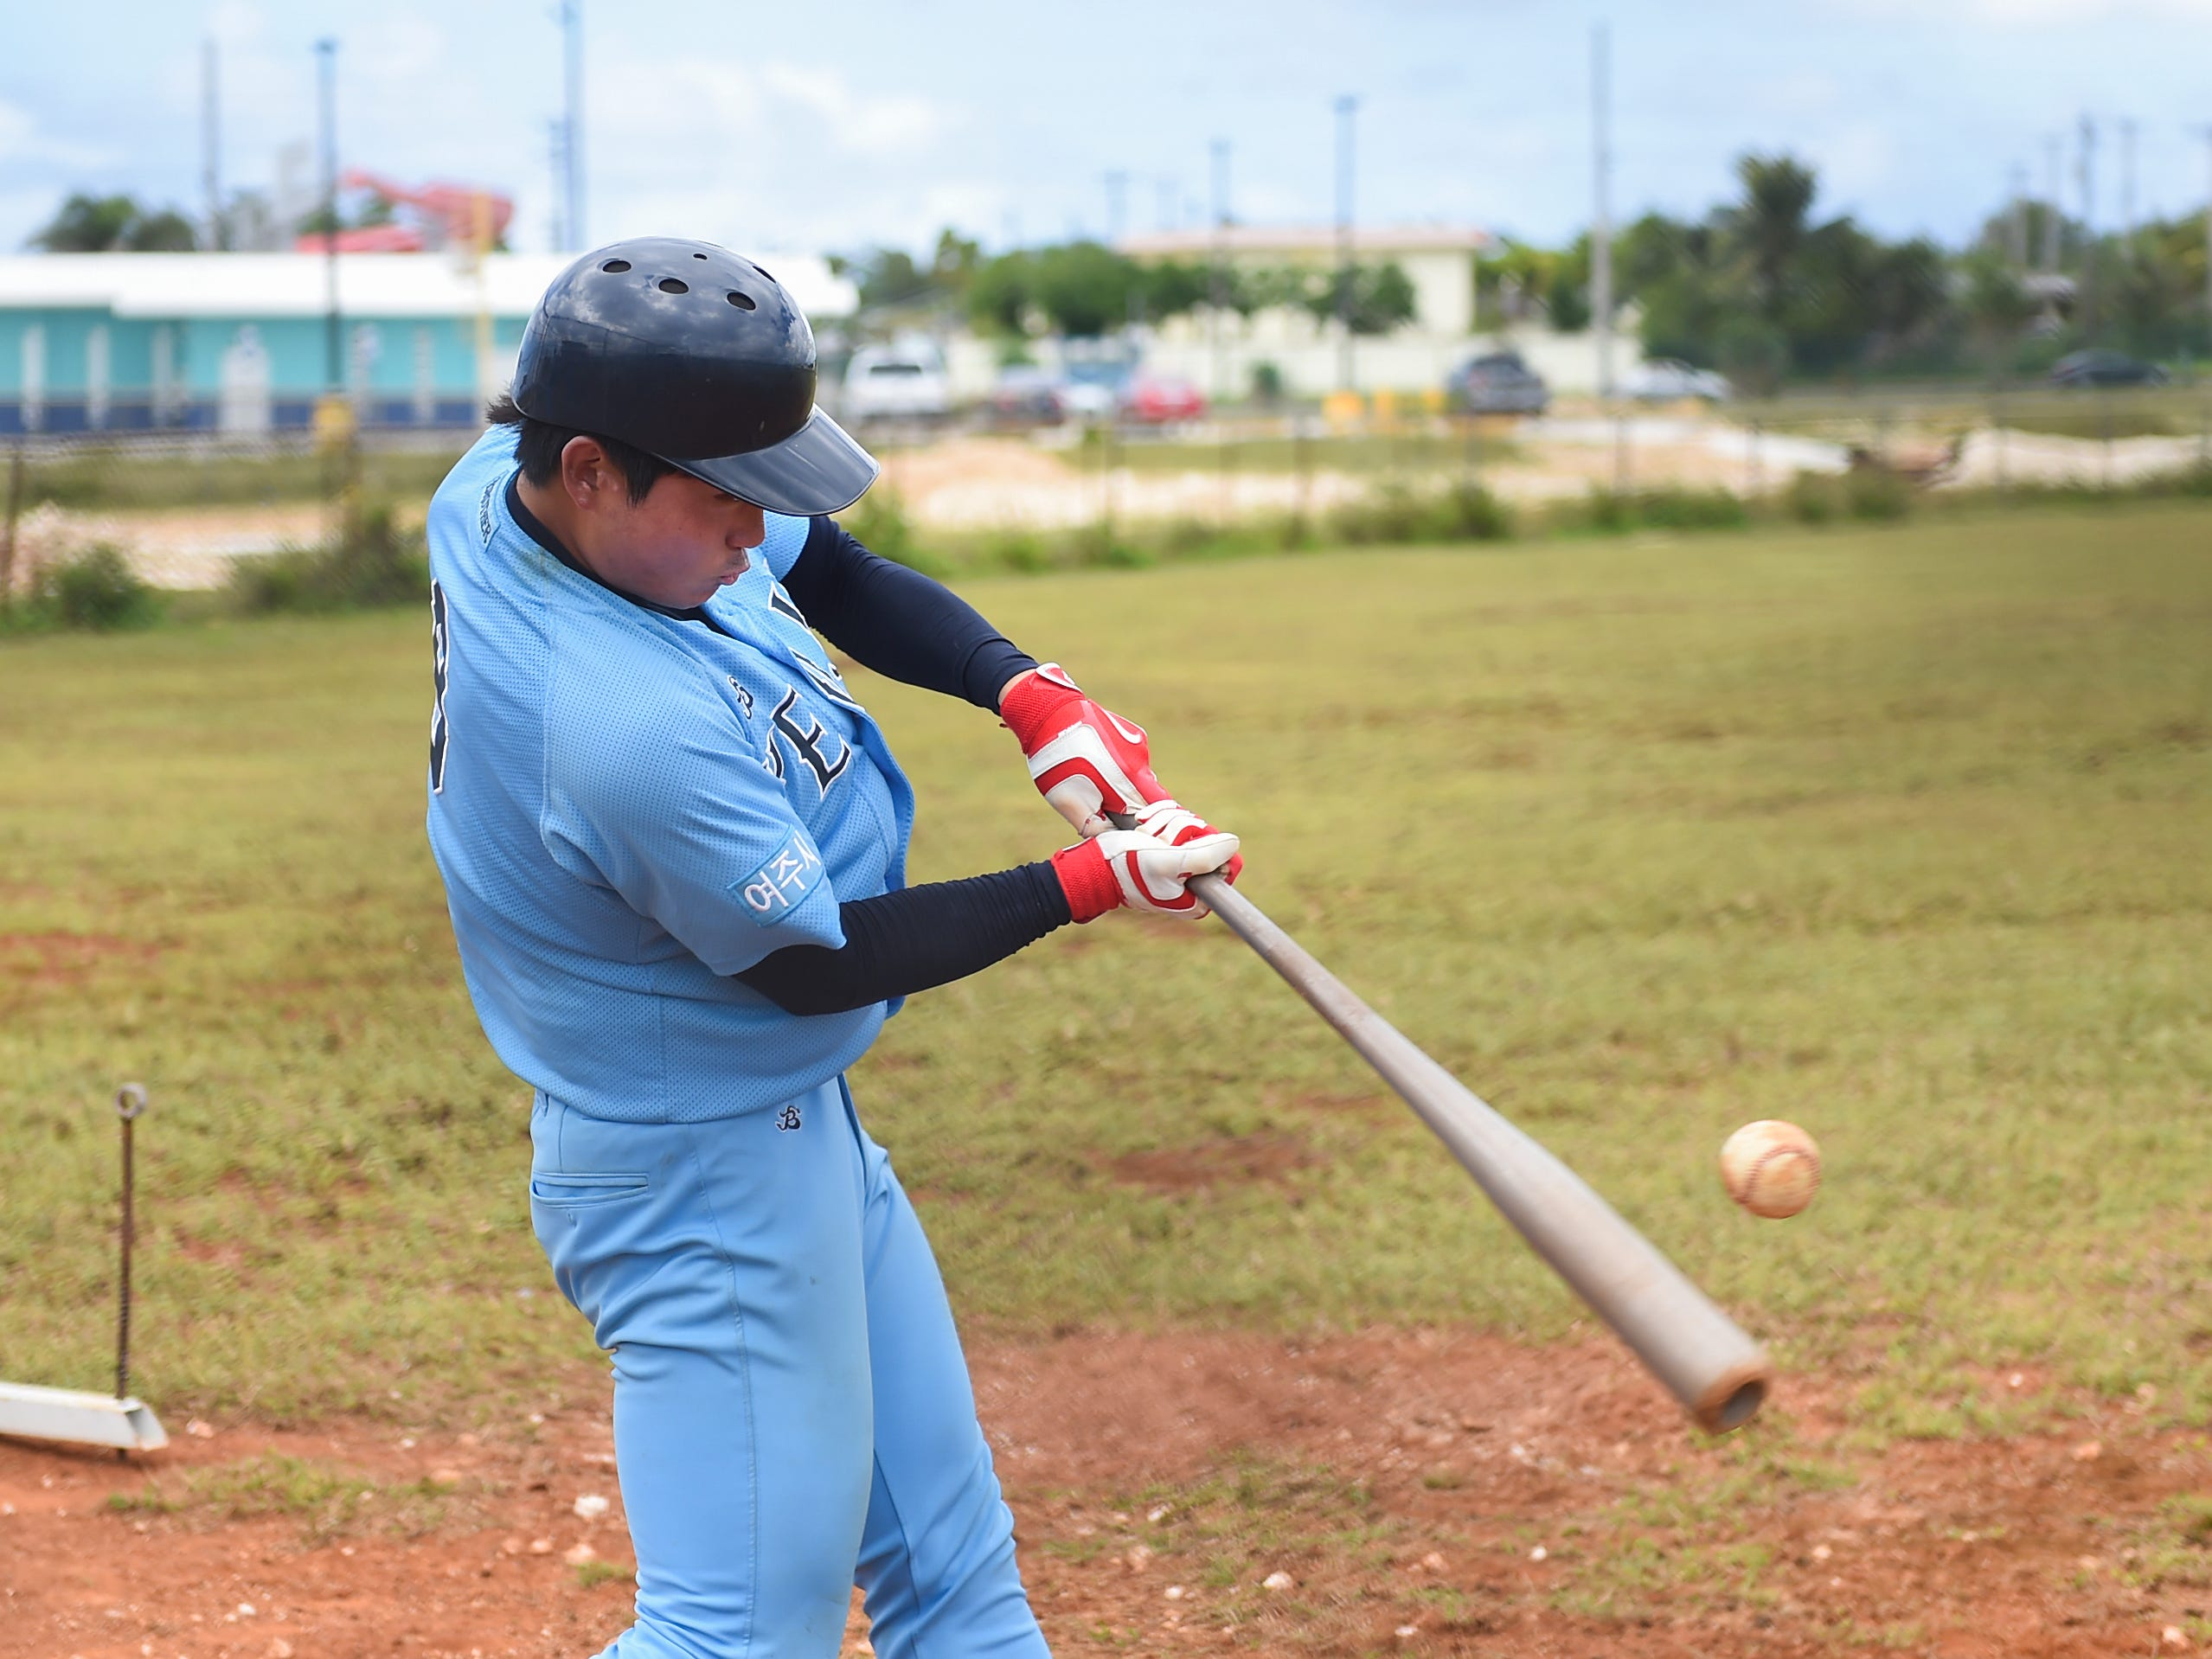 Yeoju University baseball player Ki Young Kwon works on batting during his team's winter training at the Guam Sports Complex in Dededo, Feb. 11, 2019.